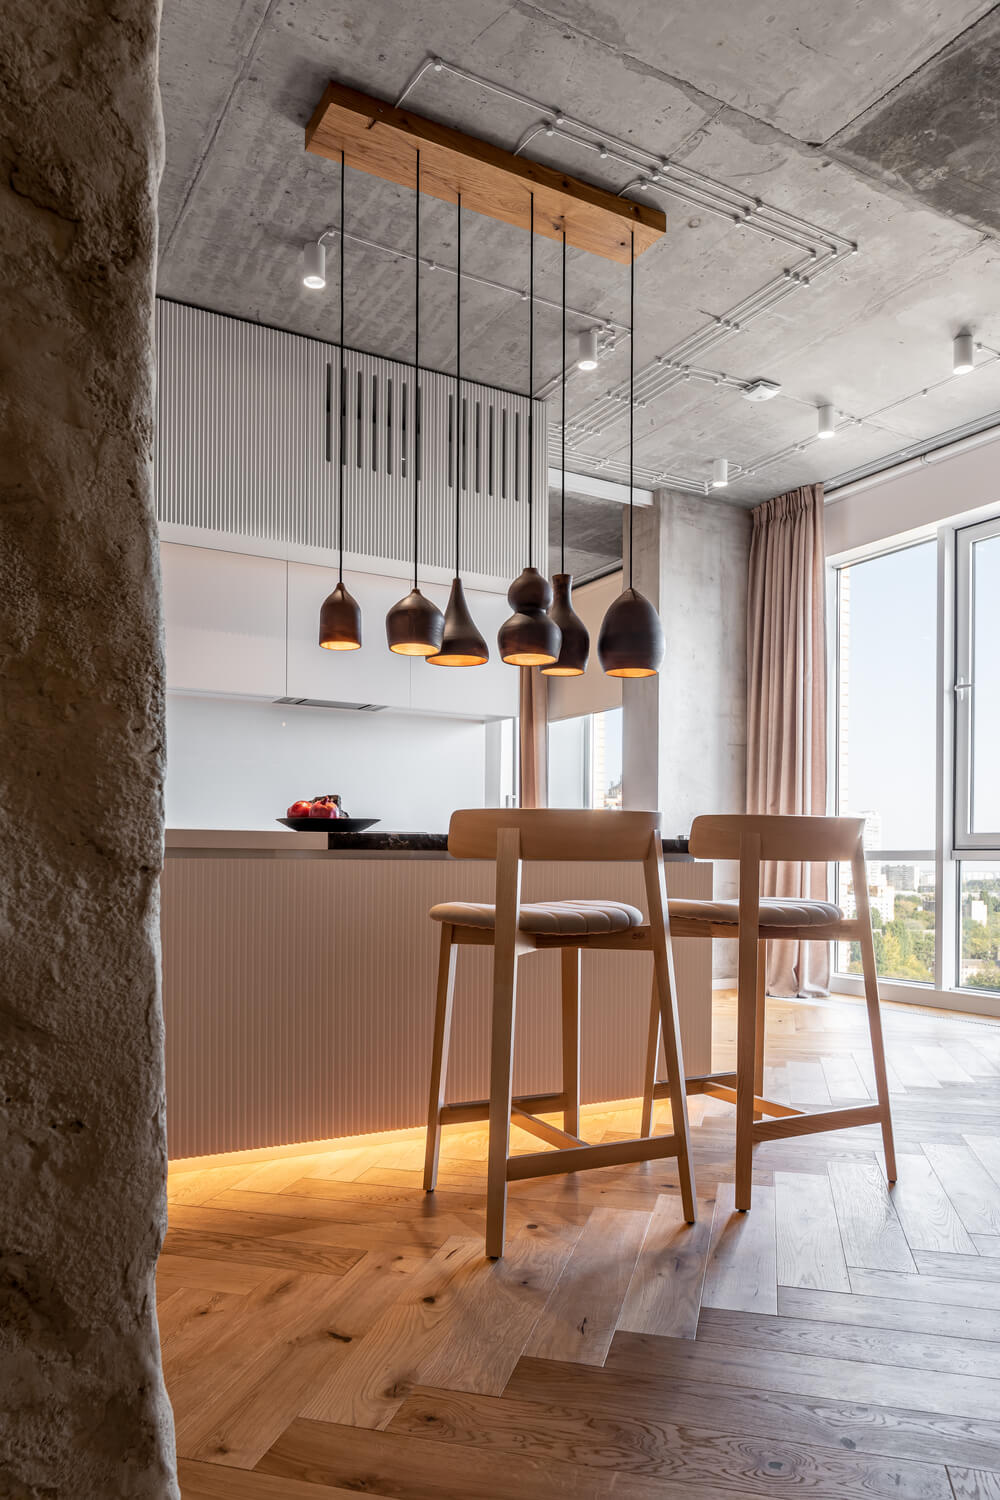 The kitchen is topped with a collection of pendant lights in different shapes and paired iwth a couple of wooden stools.